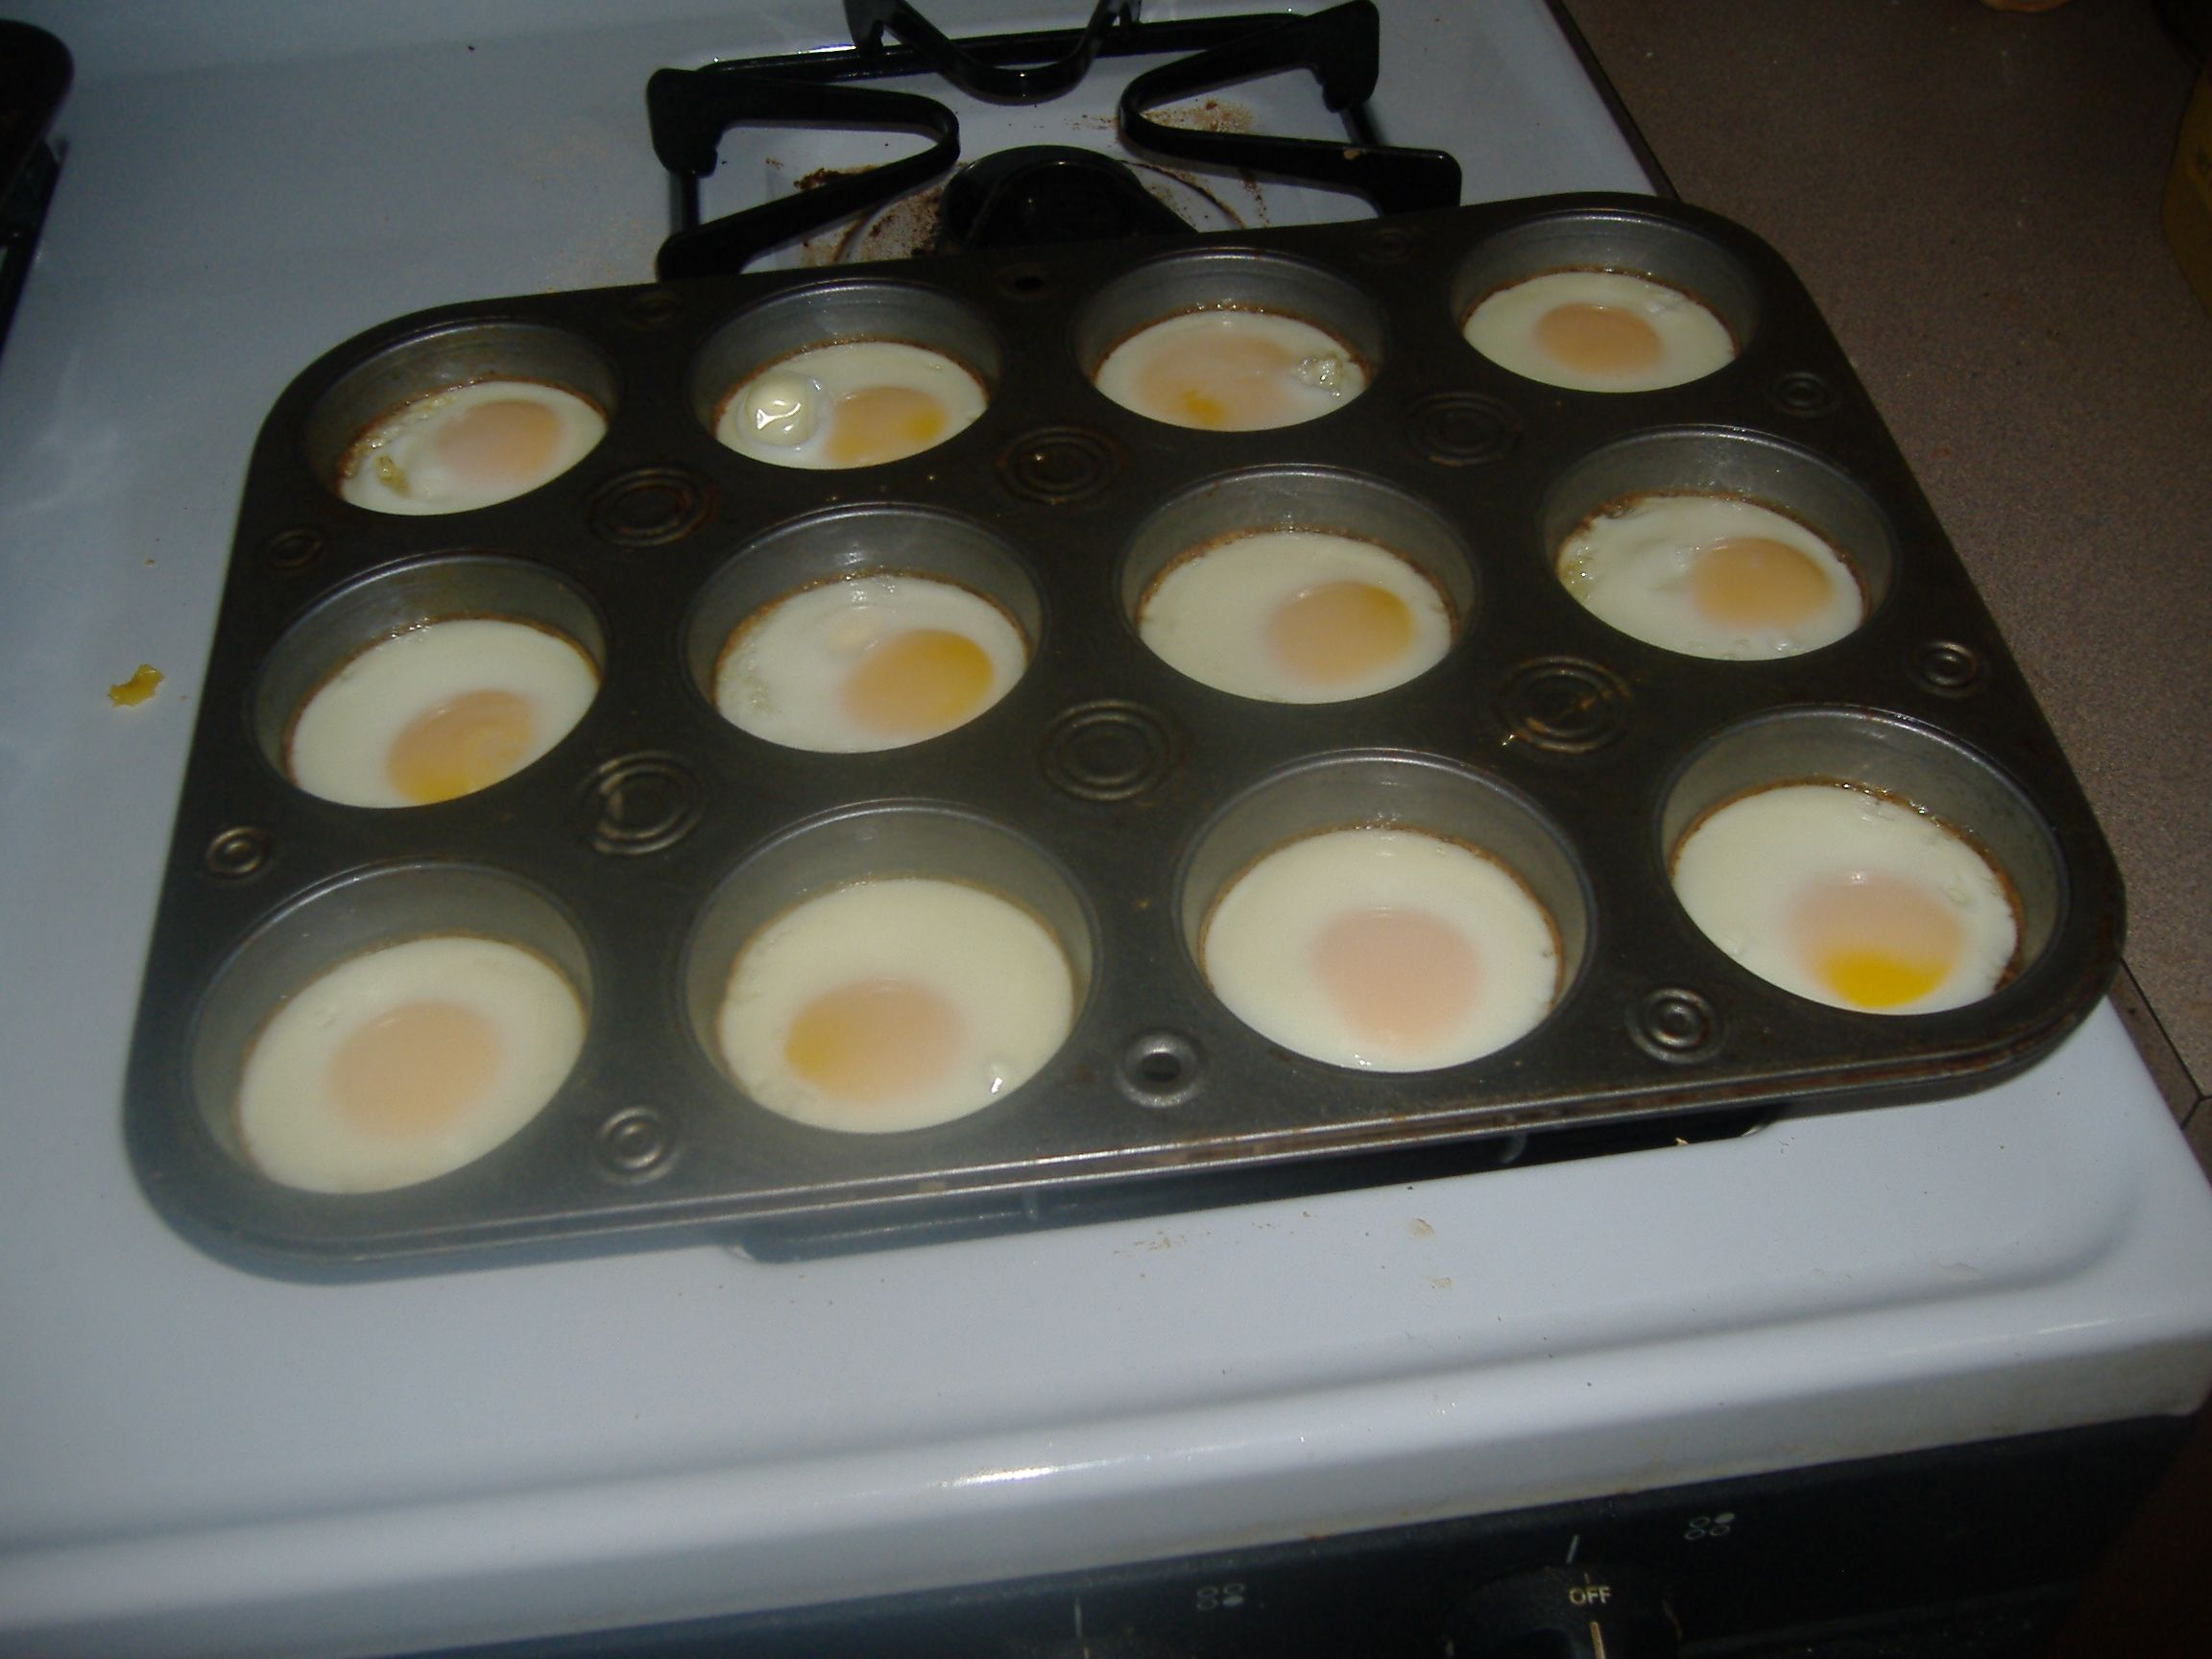 1000+ images about Weight watchers breakfast on Pinterest ...